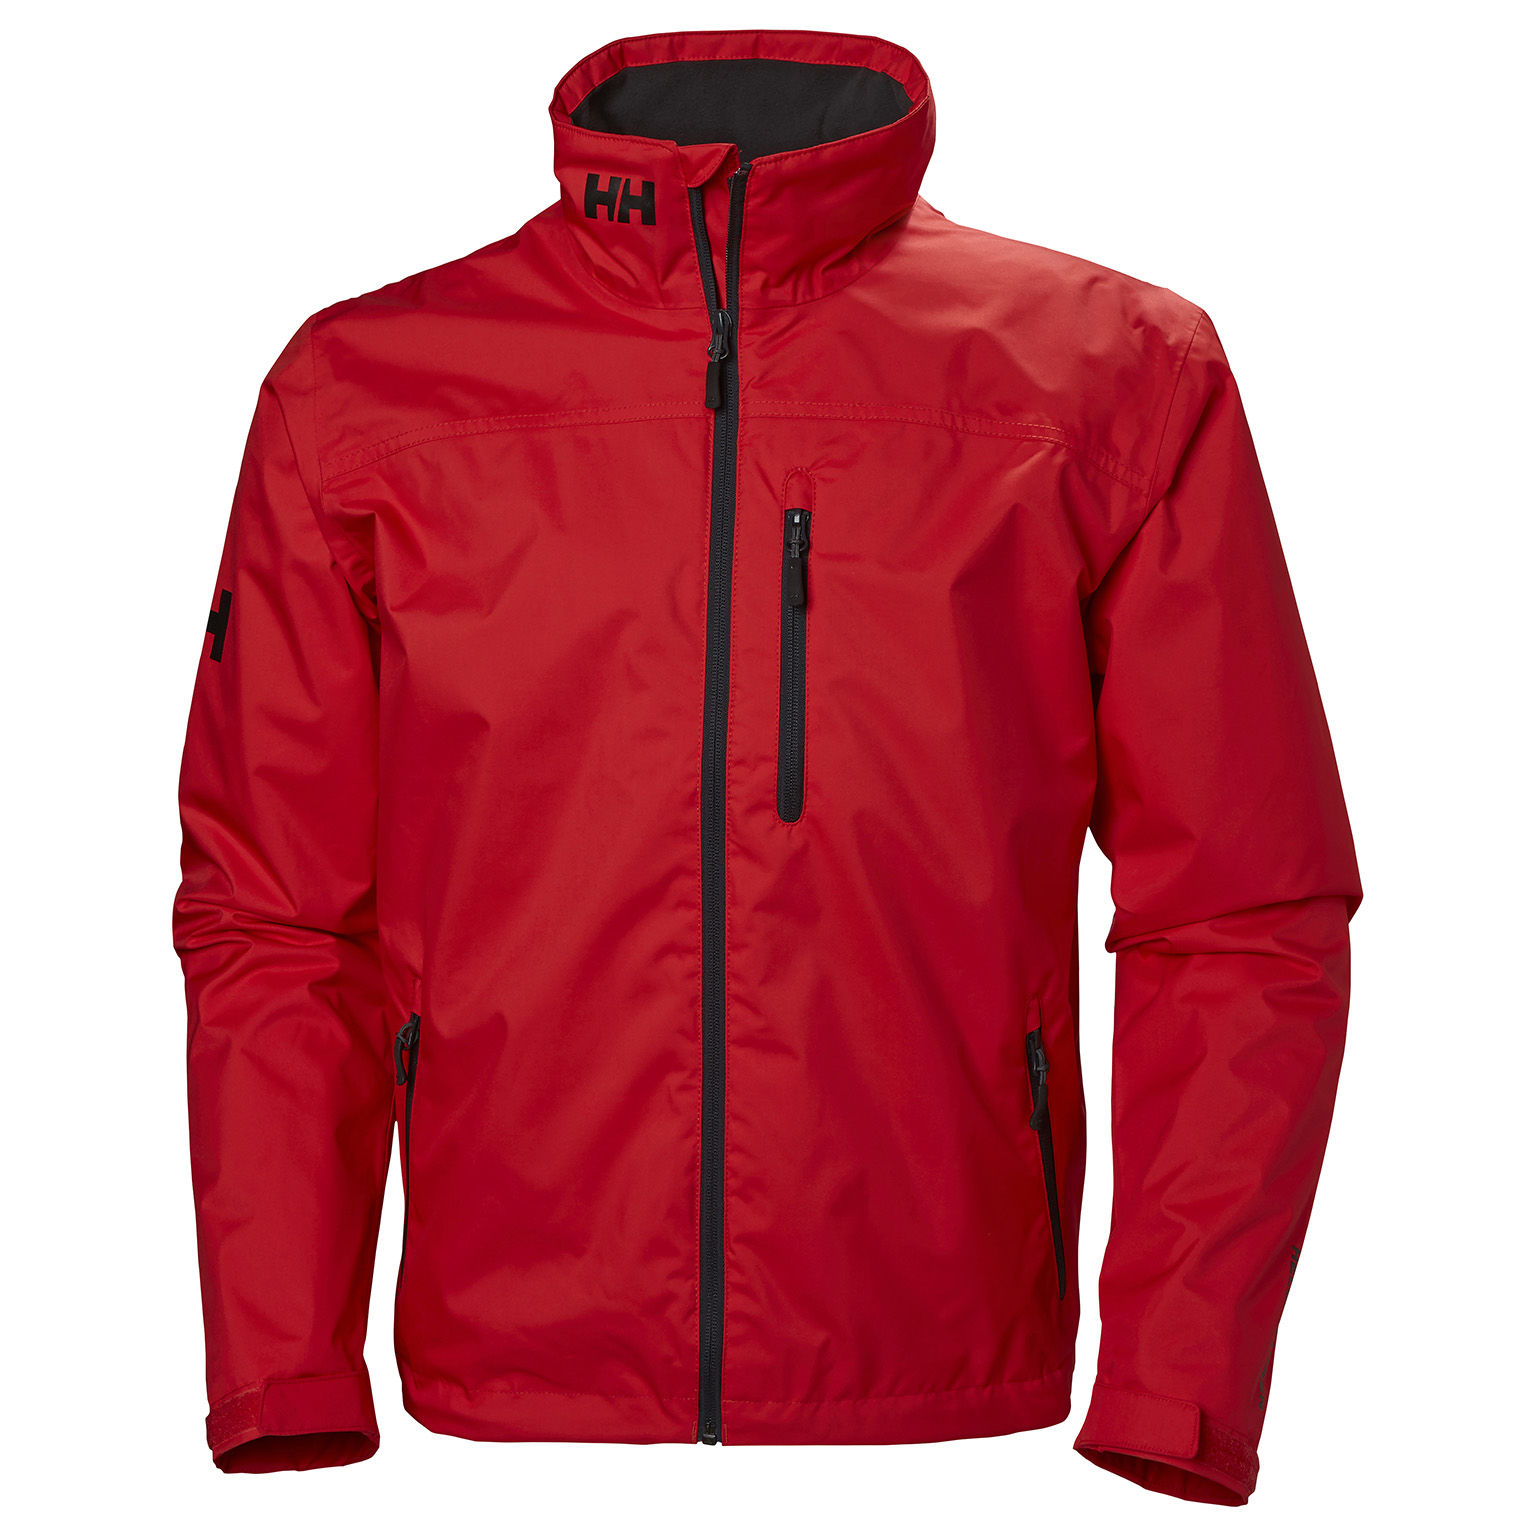 lowest price 6684d 9c3ad Helly Hansen Crew Mid Layer Jacket 2019 - Red